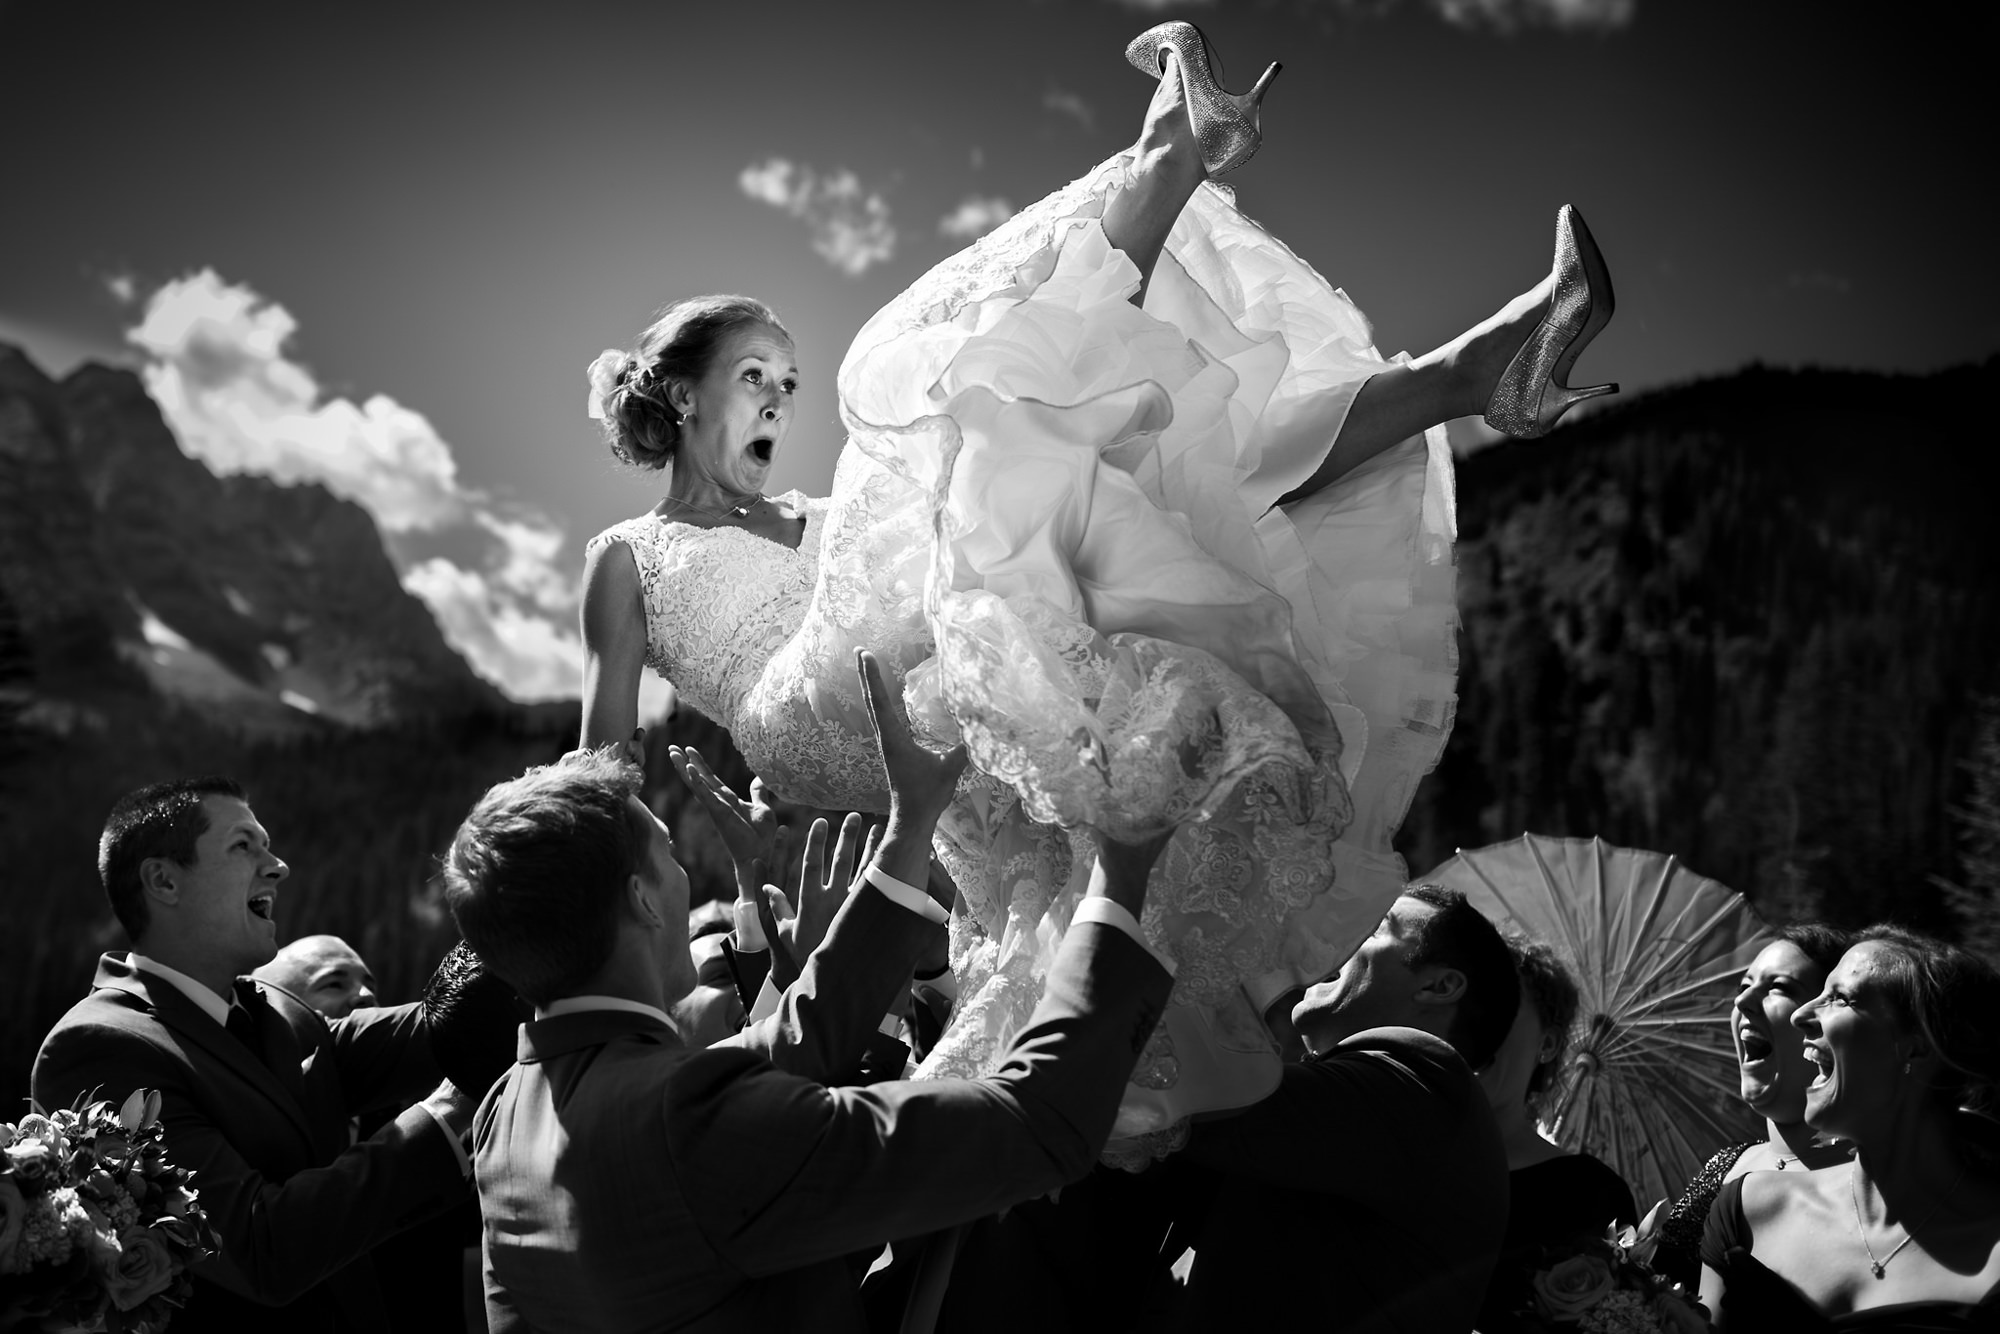 Bride being carried in the air by groomsmen - photo by Two Mann Studios